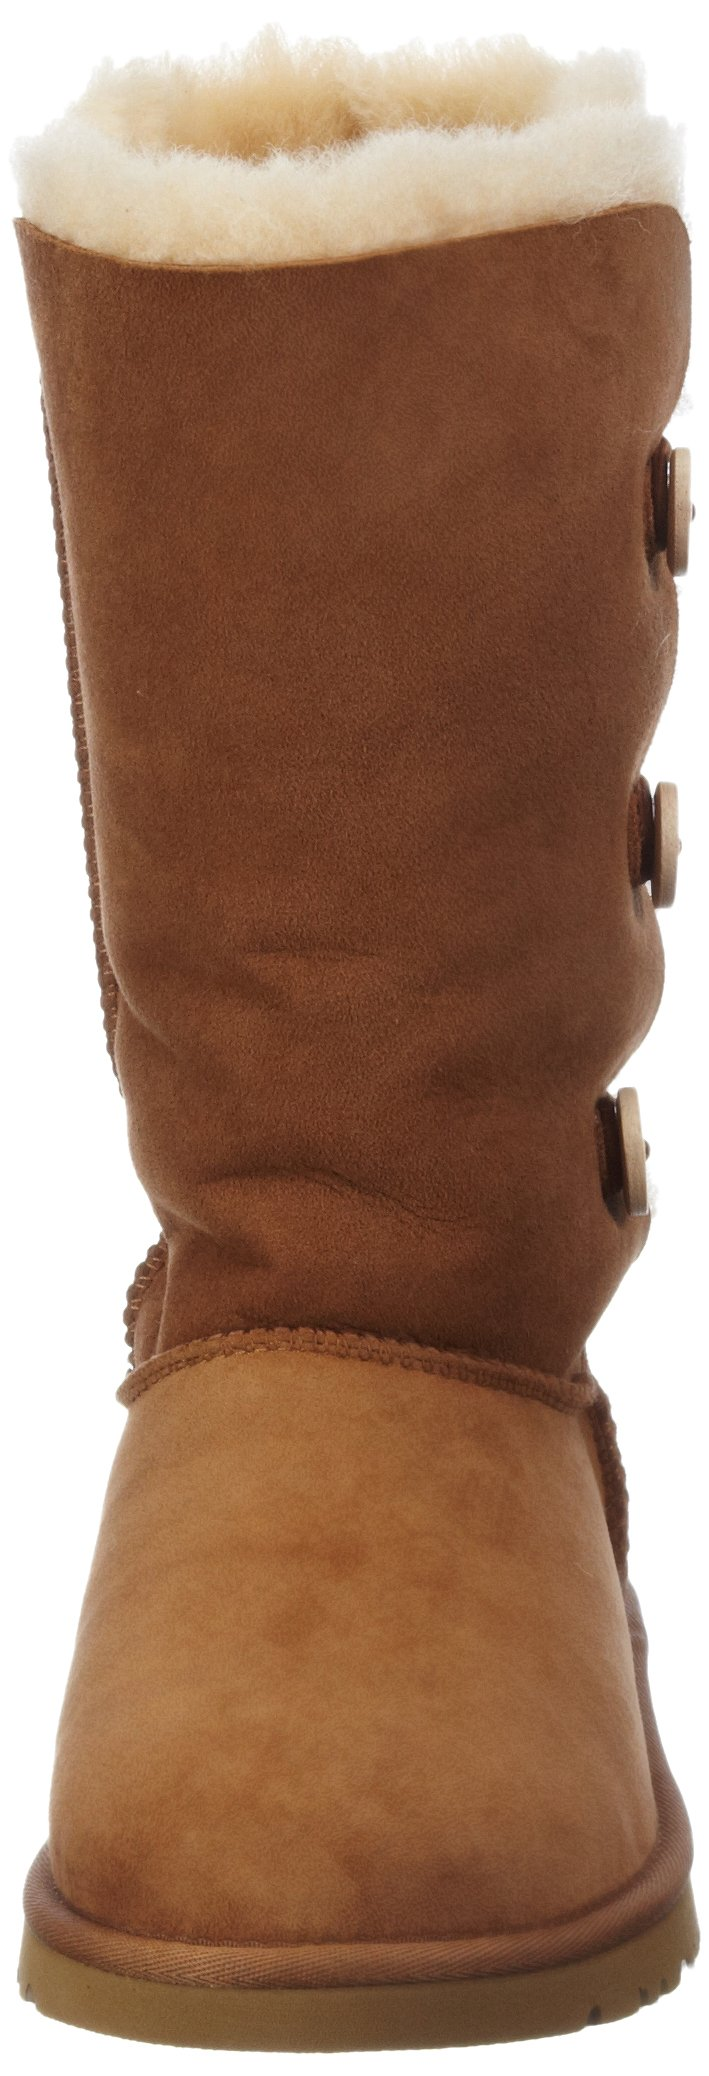 Kid's UGG Bailey Button Triplet chestnut size 4 us by UGG (Image #4)